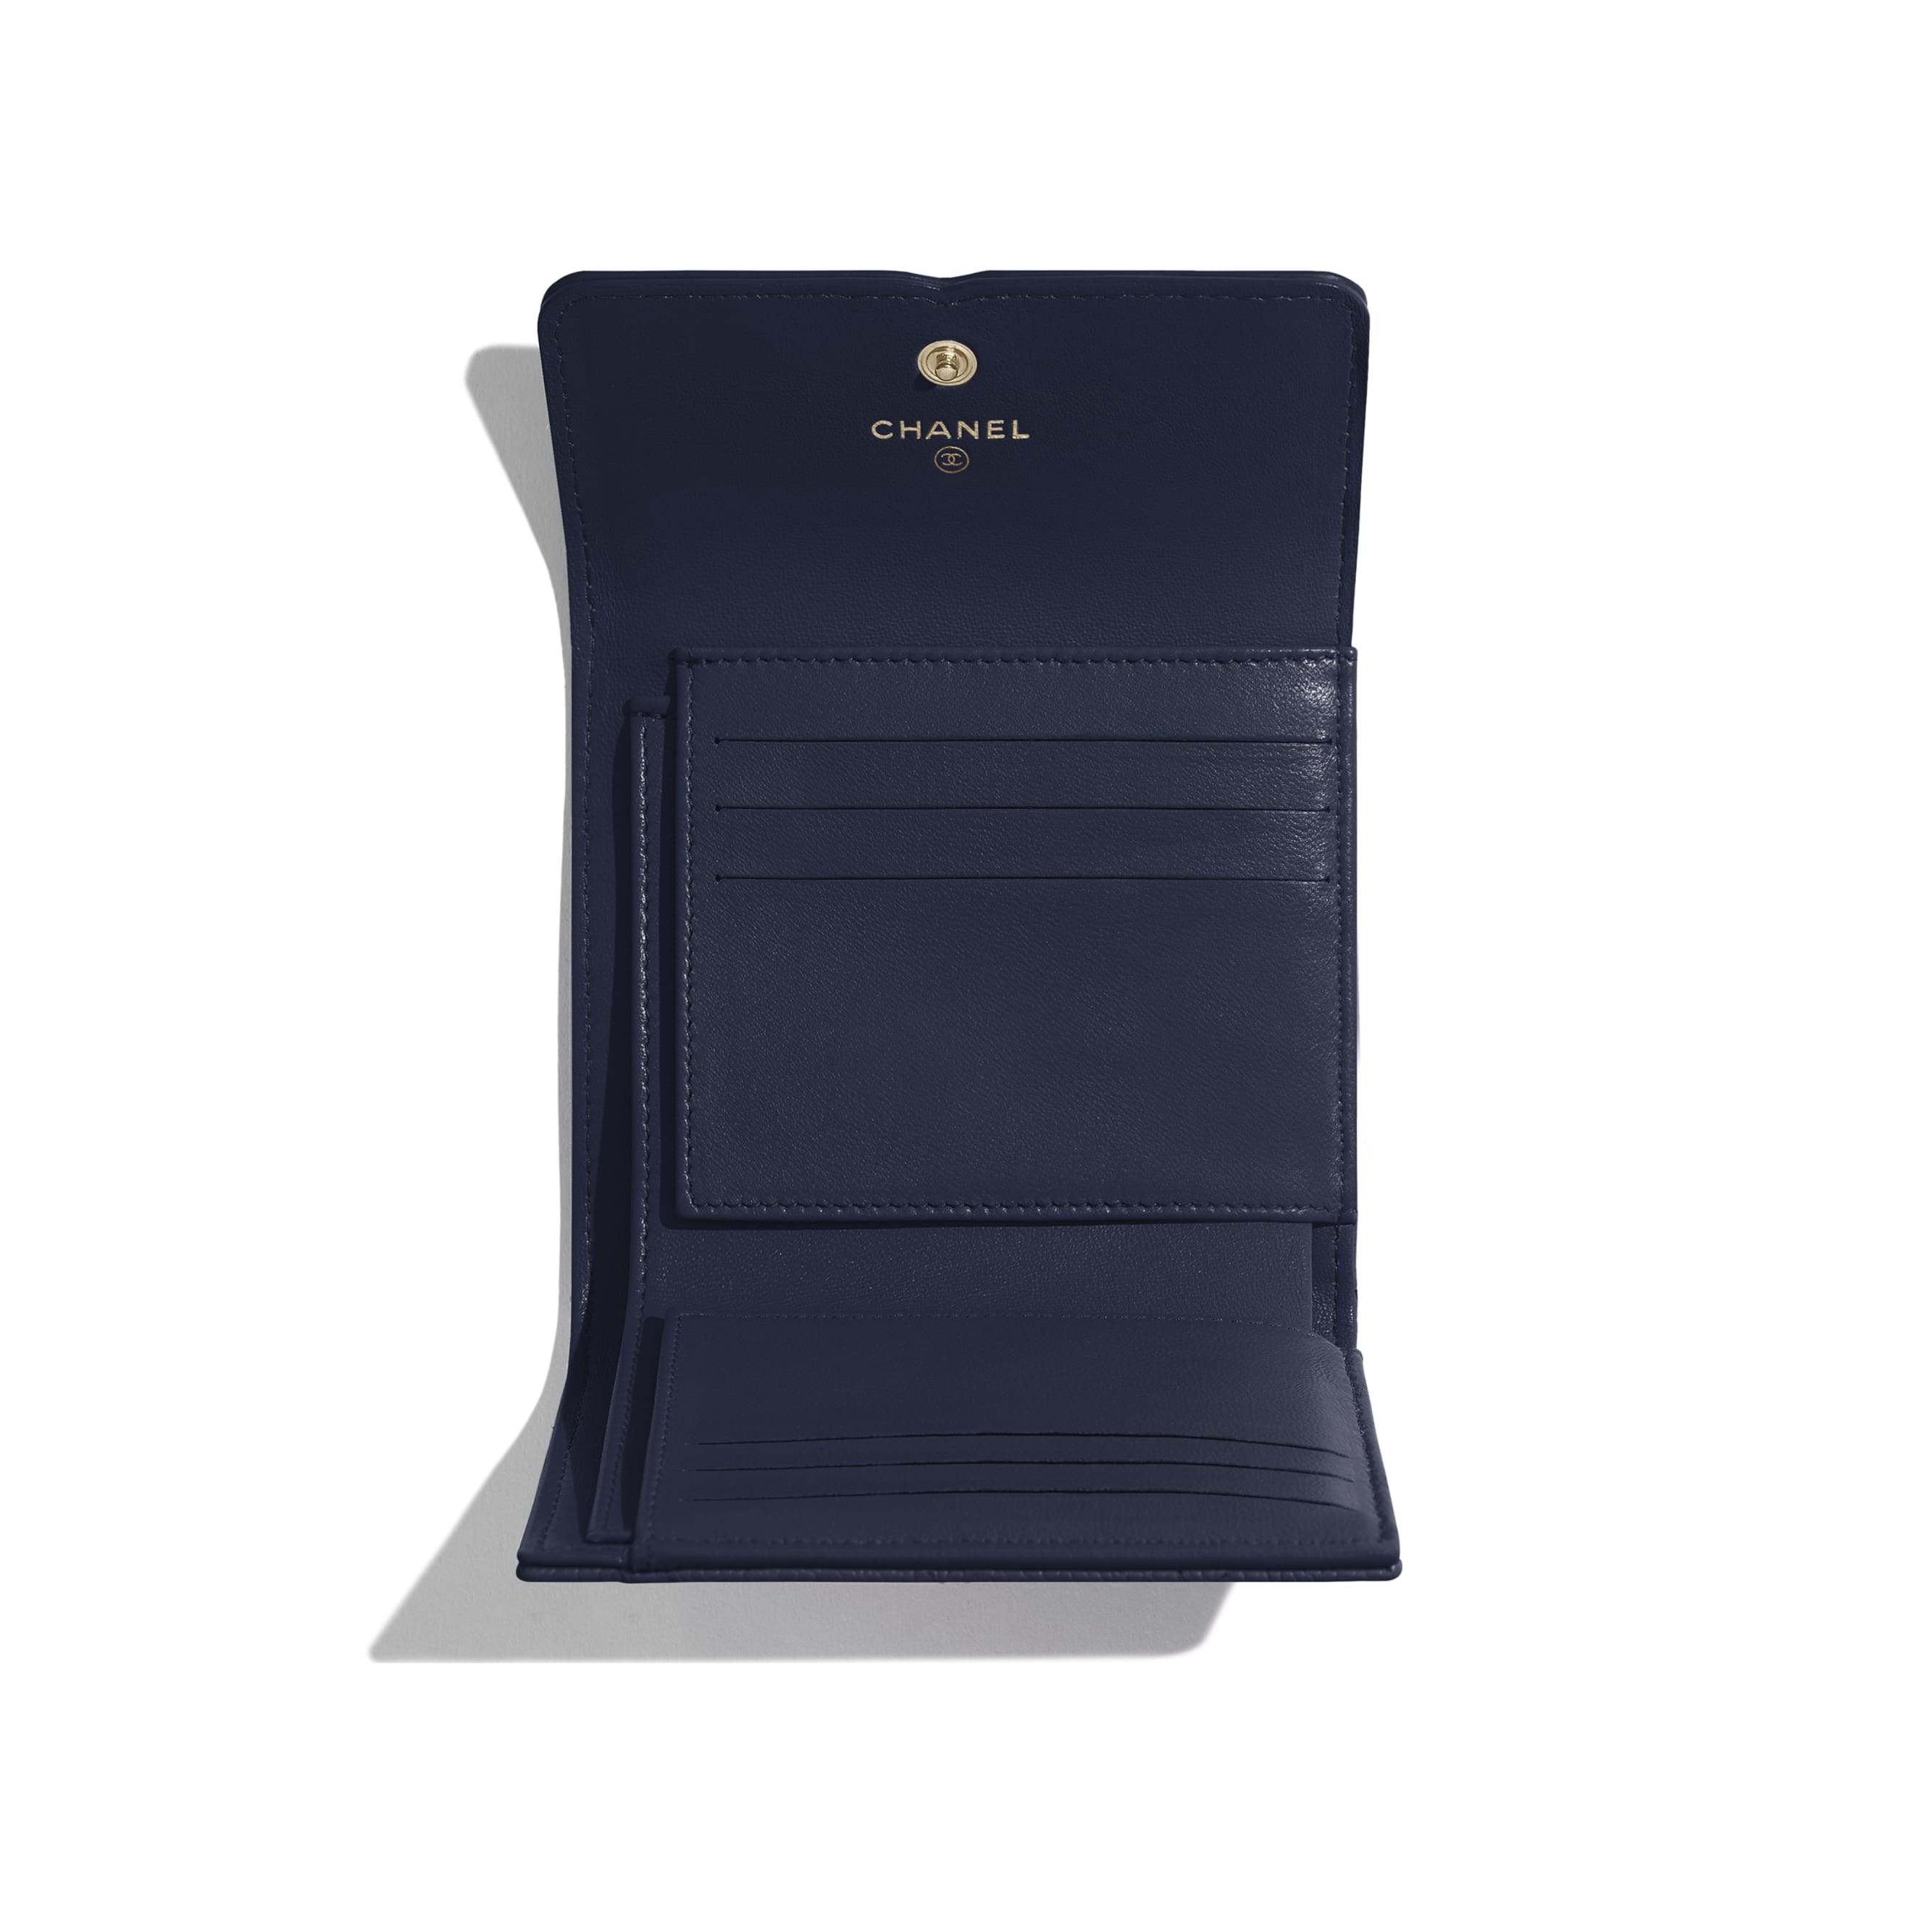 Small Flap Wallet - Navy Blue - Grained Calfskin & Gold-Tone Metal - CHANEL - Other view - see standard sized version